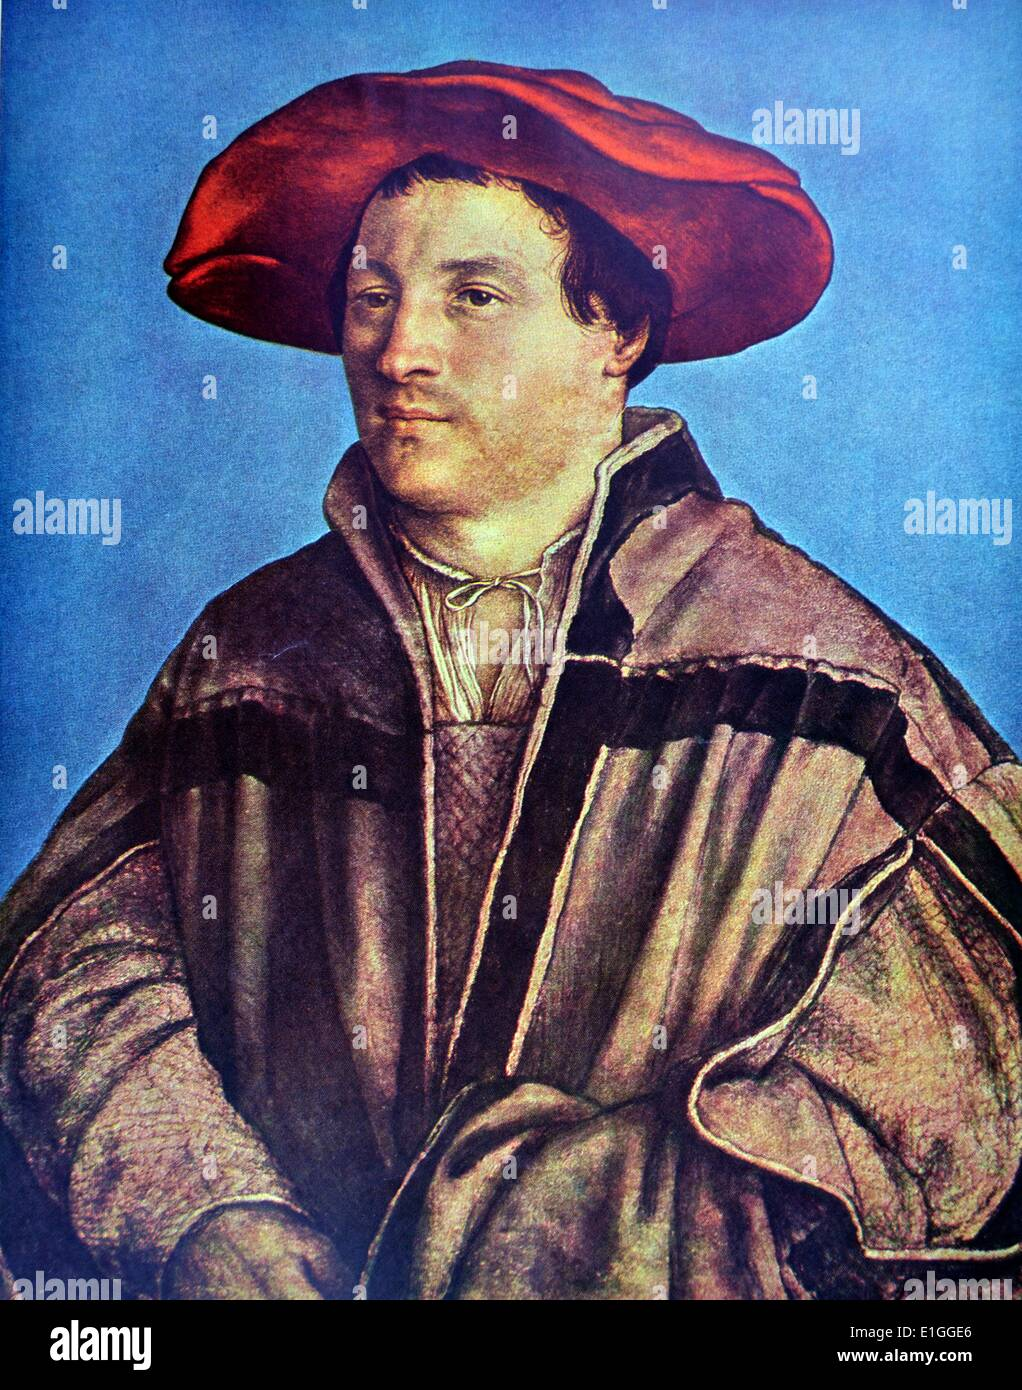 Hans Holbein the Younger: Self portrait, 1523-1524, 1523-1524 - Stock Image